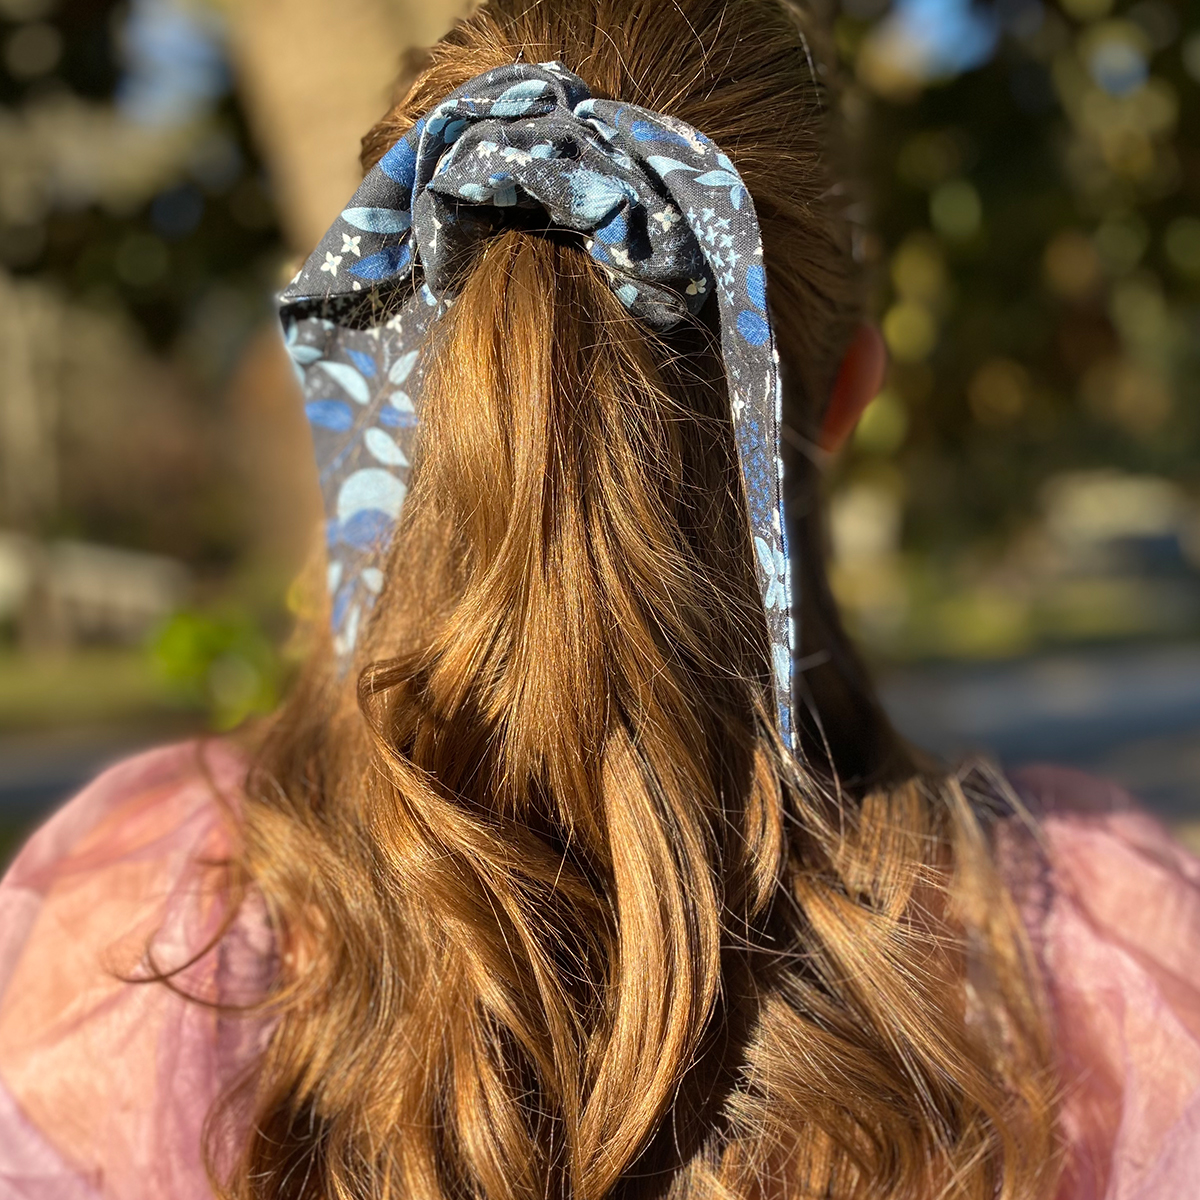 finished scrunchie in girl's hair